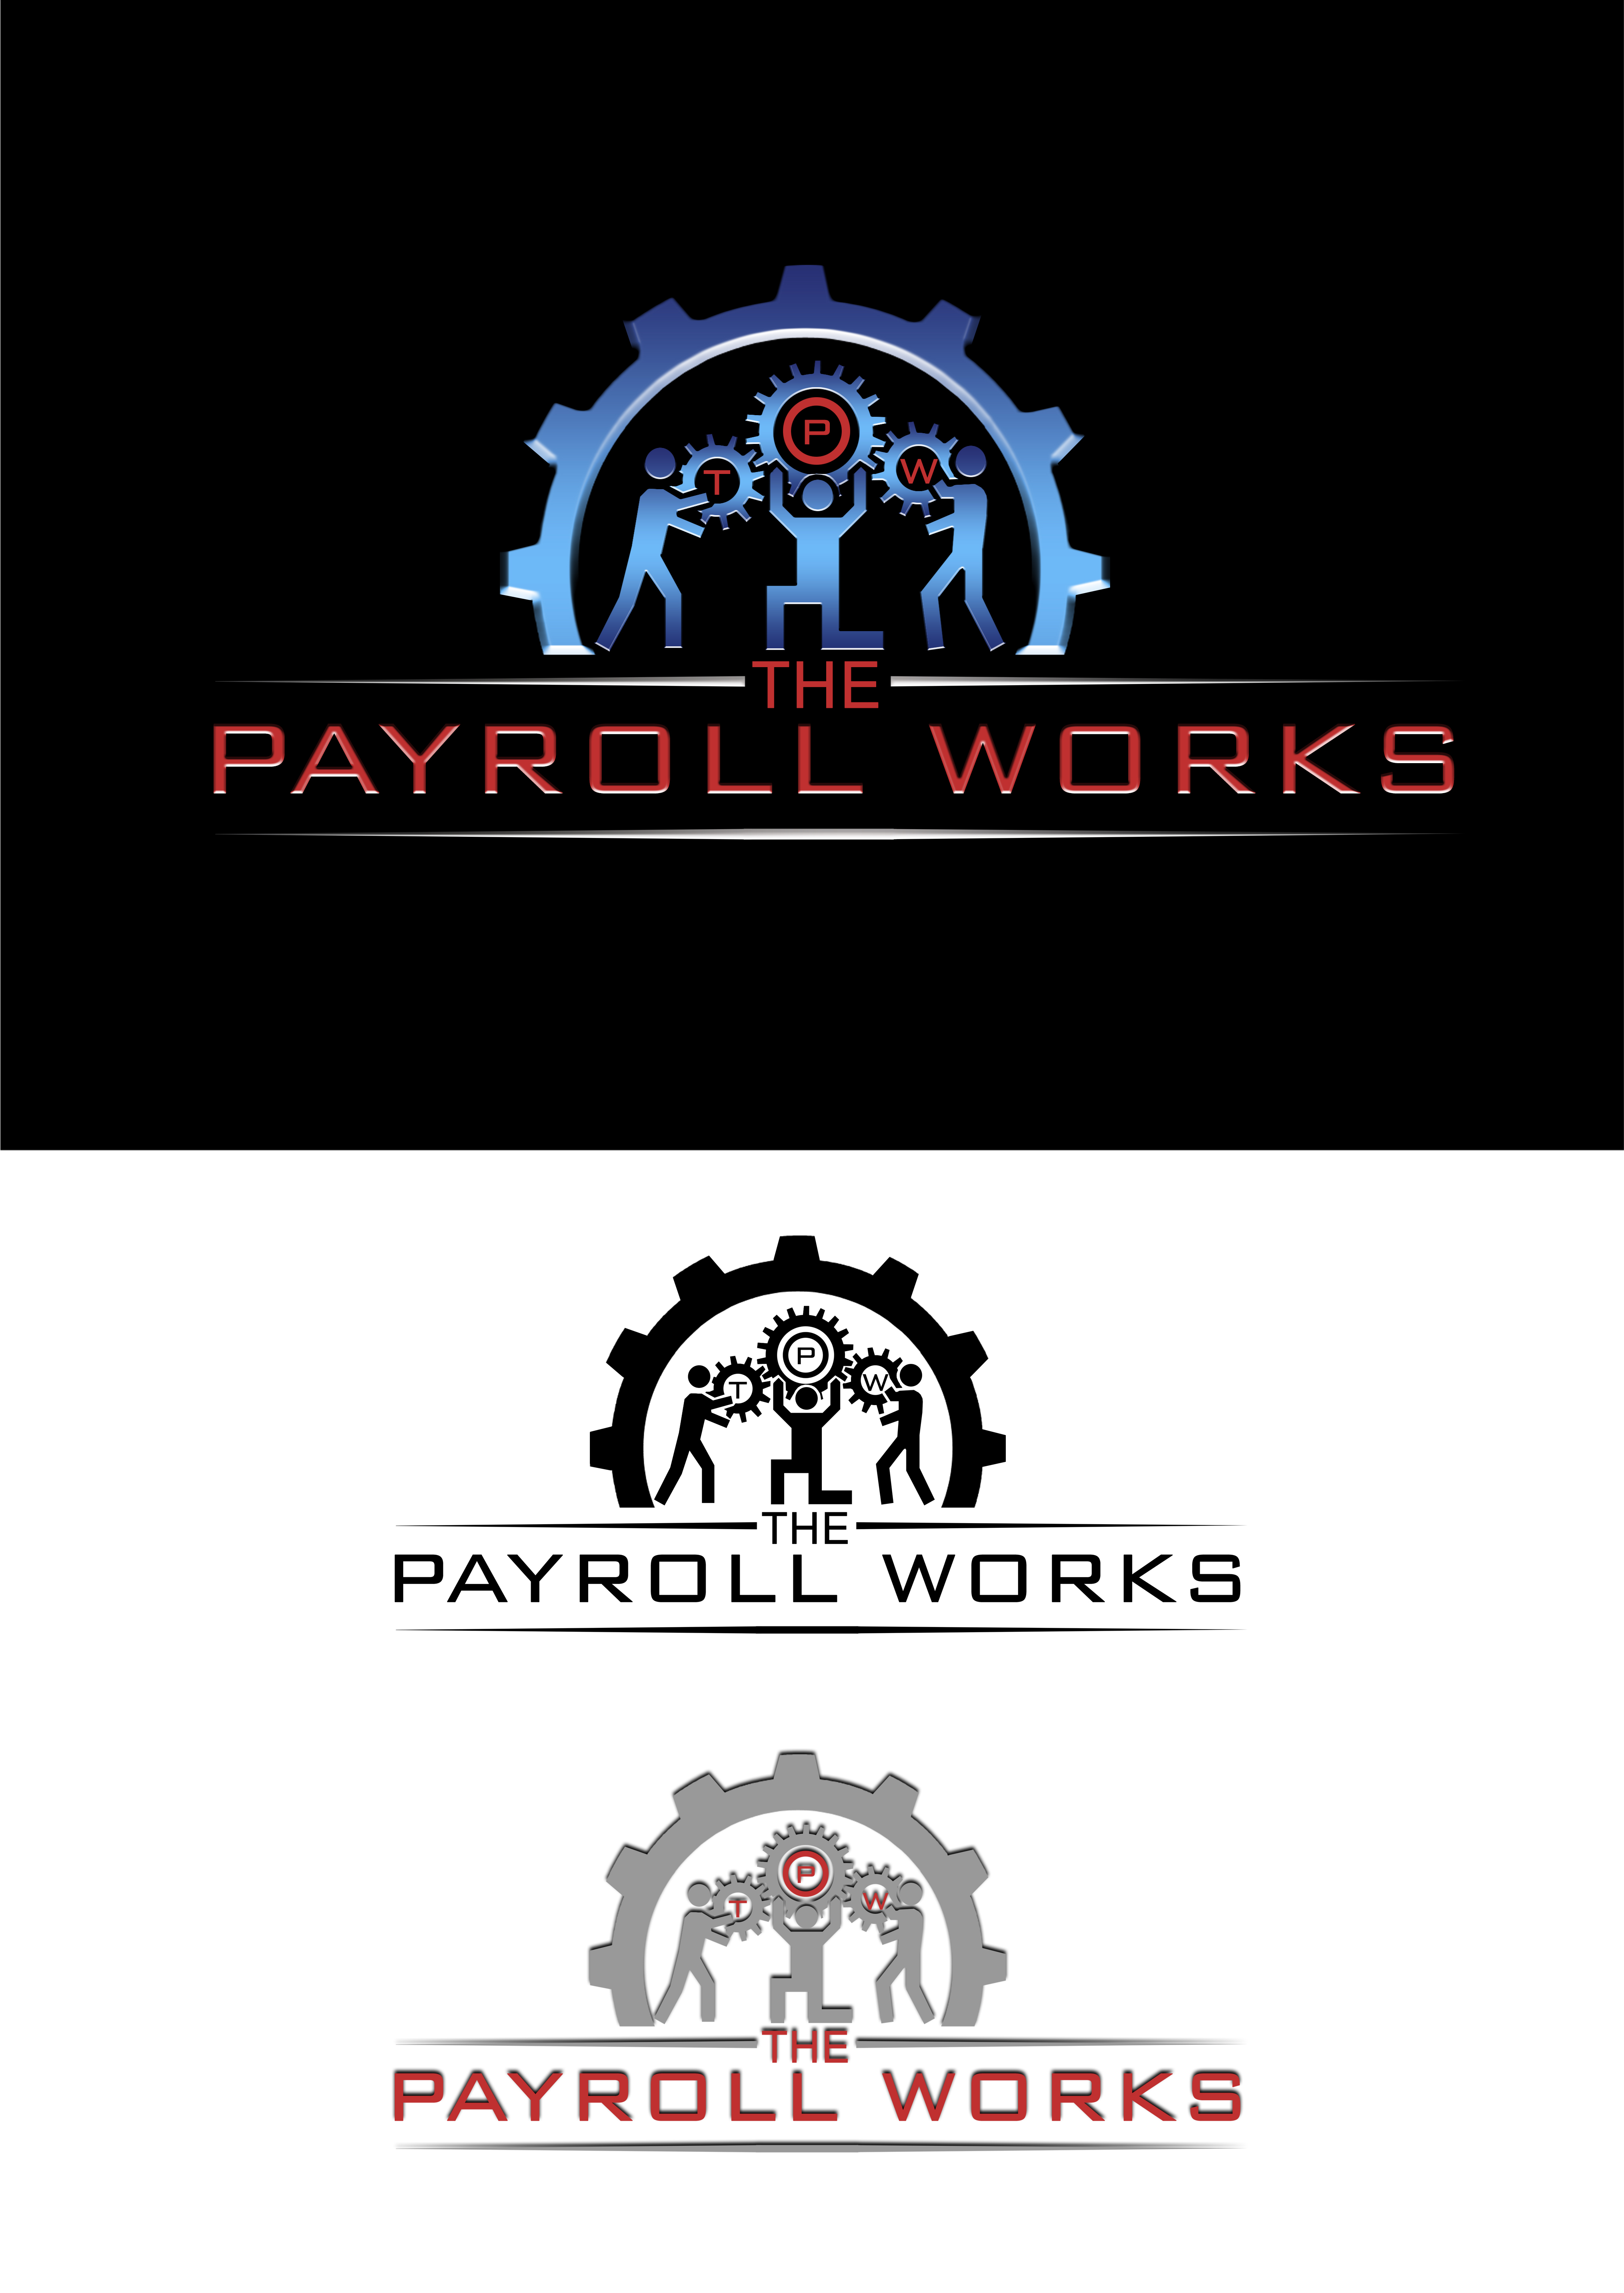 Logo Design by JSDESIGNGROUP - Entry No. 153 in the Logo Design Contest Captivating Logo Design for The Payroll Works.